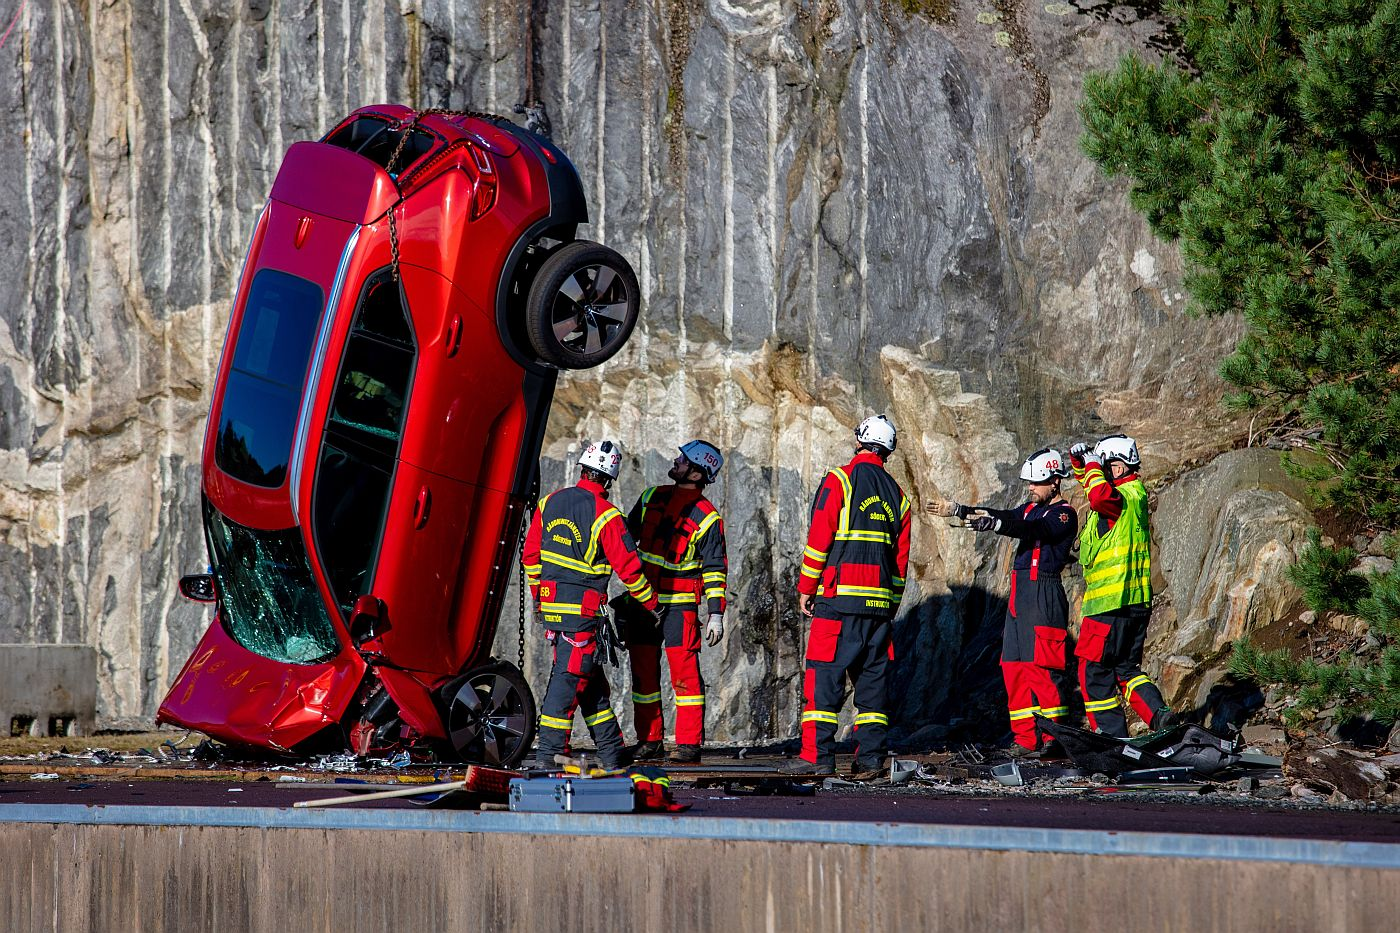 Volvo Cars drops new cars from  metres to help rescue services save